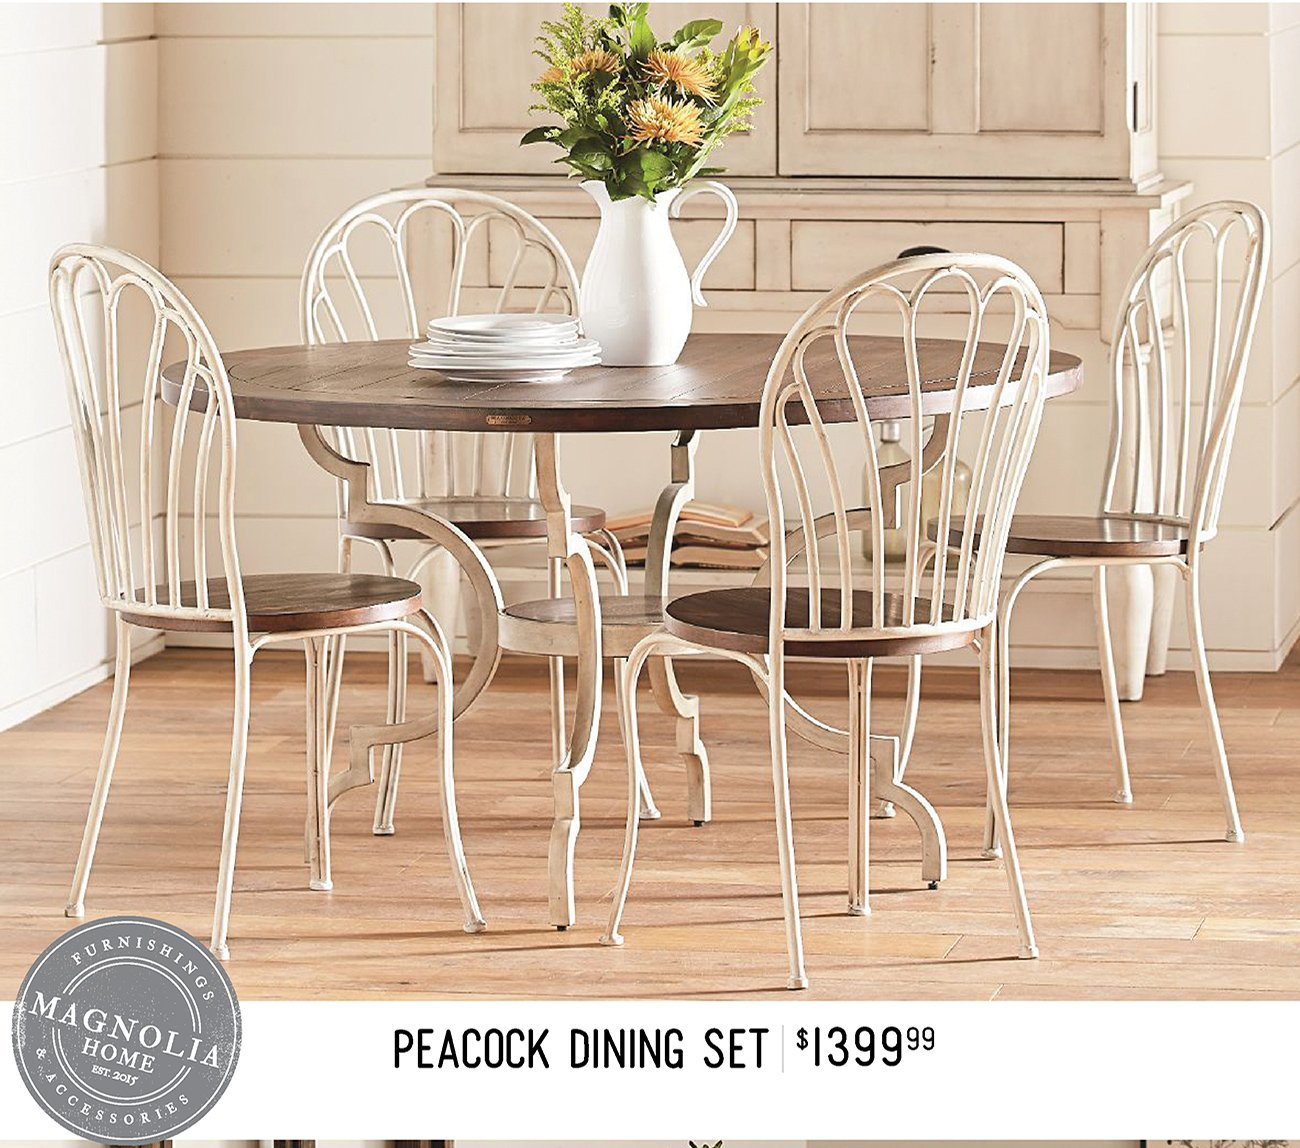 Magnolia Home By Joanna Gaines Now Available Rc Willey Furniture Store